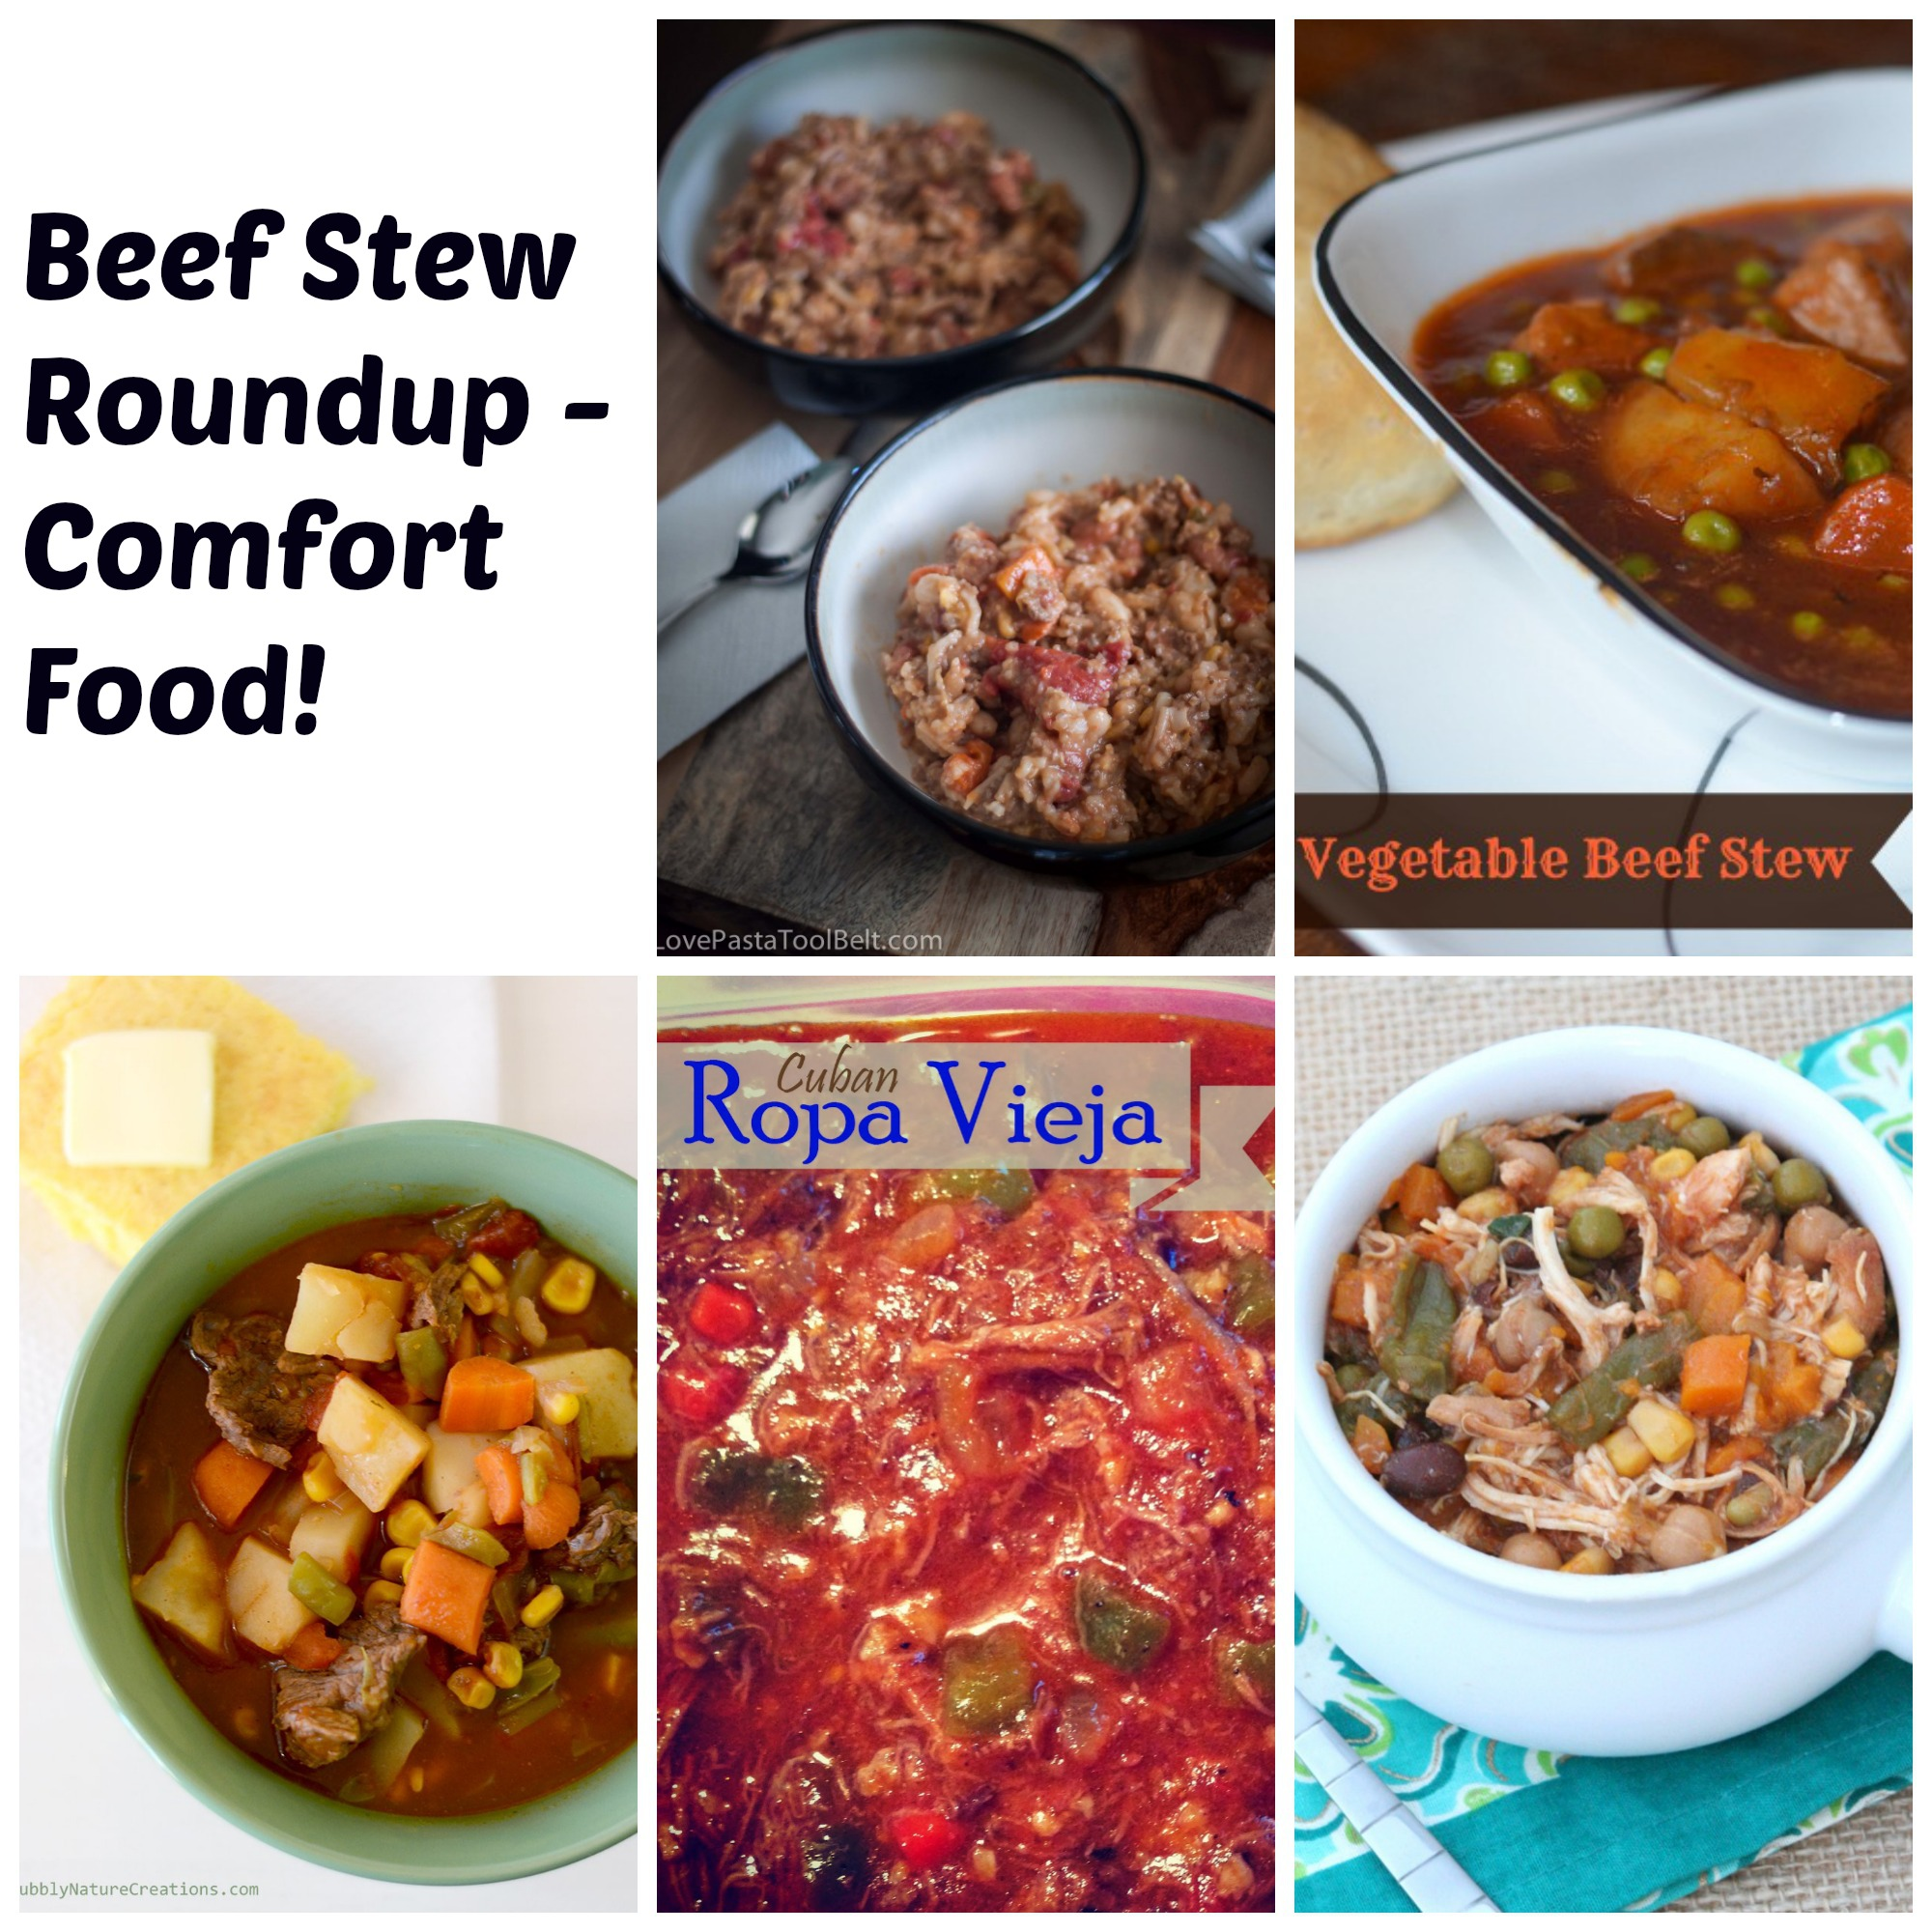 Beef Stew Roundup